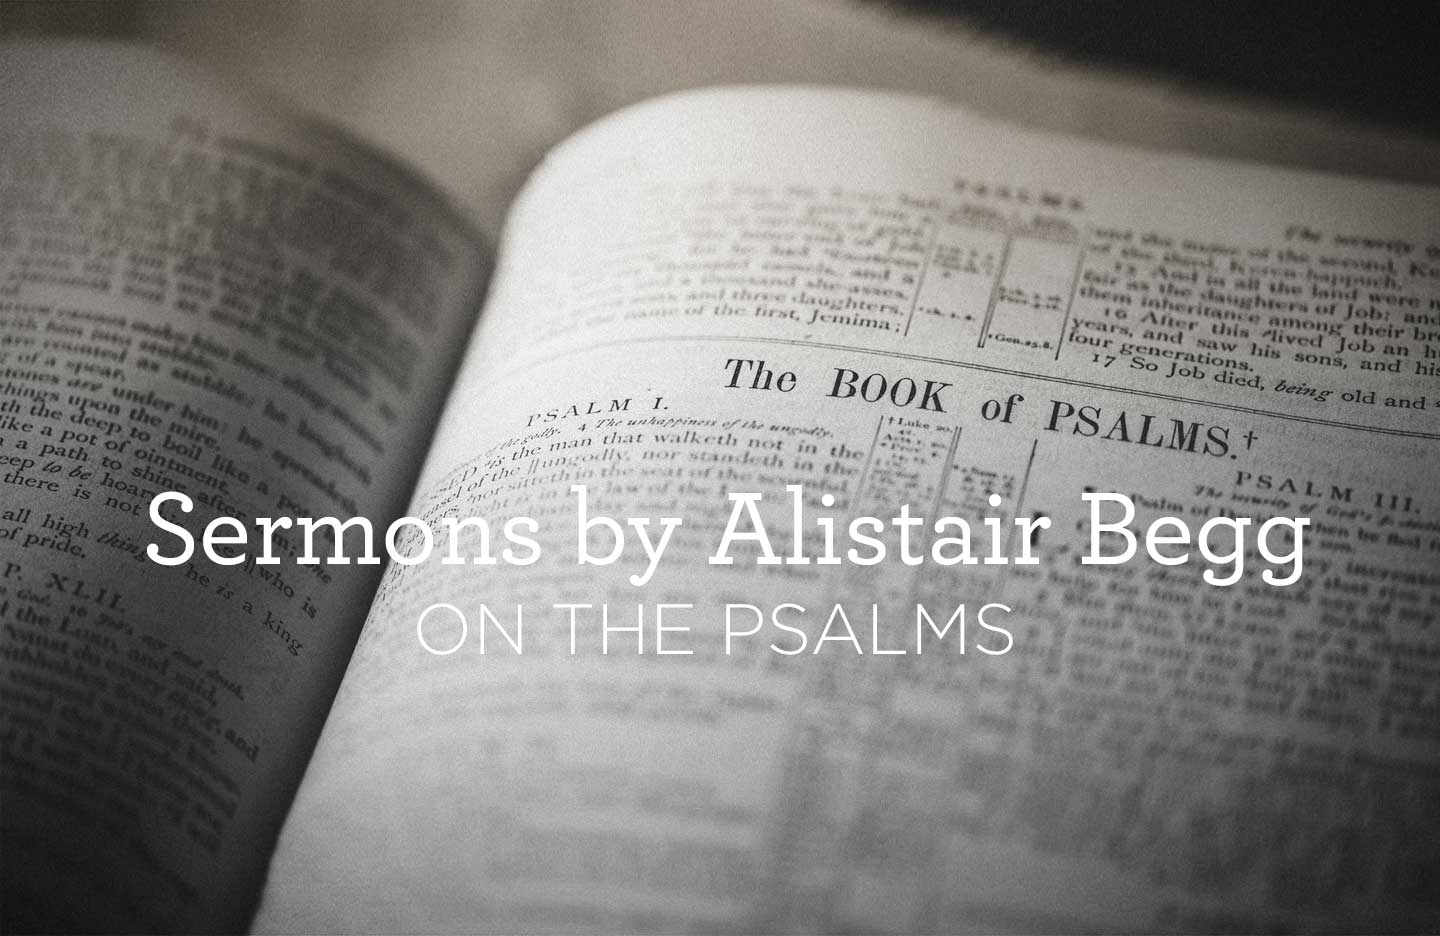 thumbnail image for Sermons by Alistair Begg on the Psalms